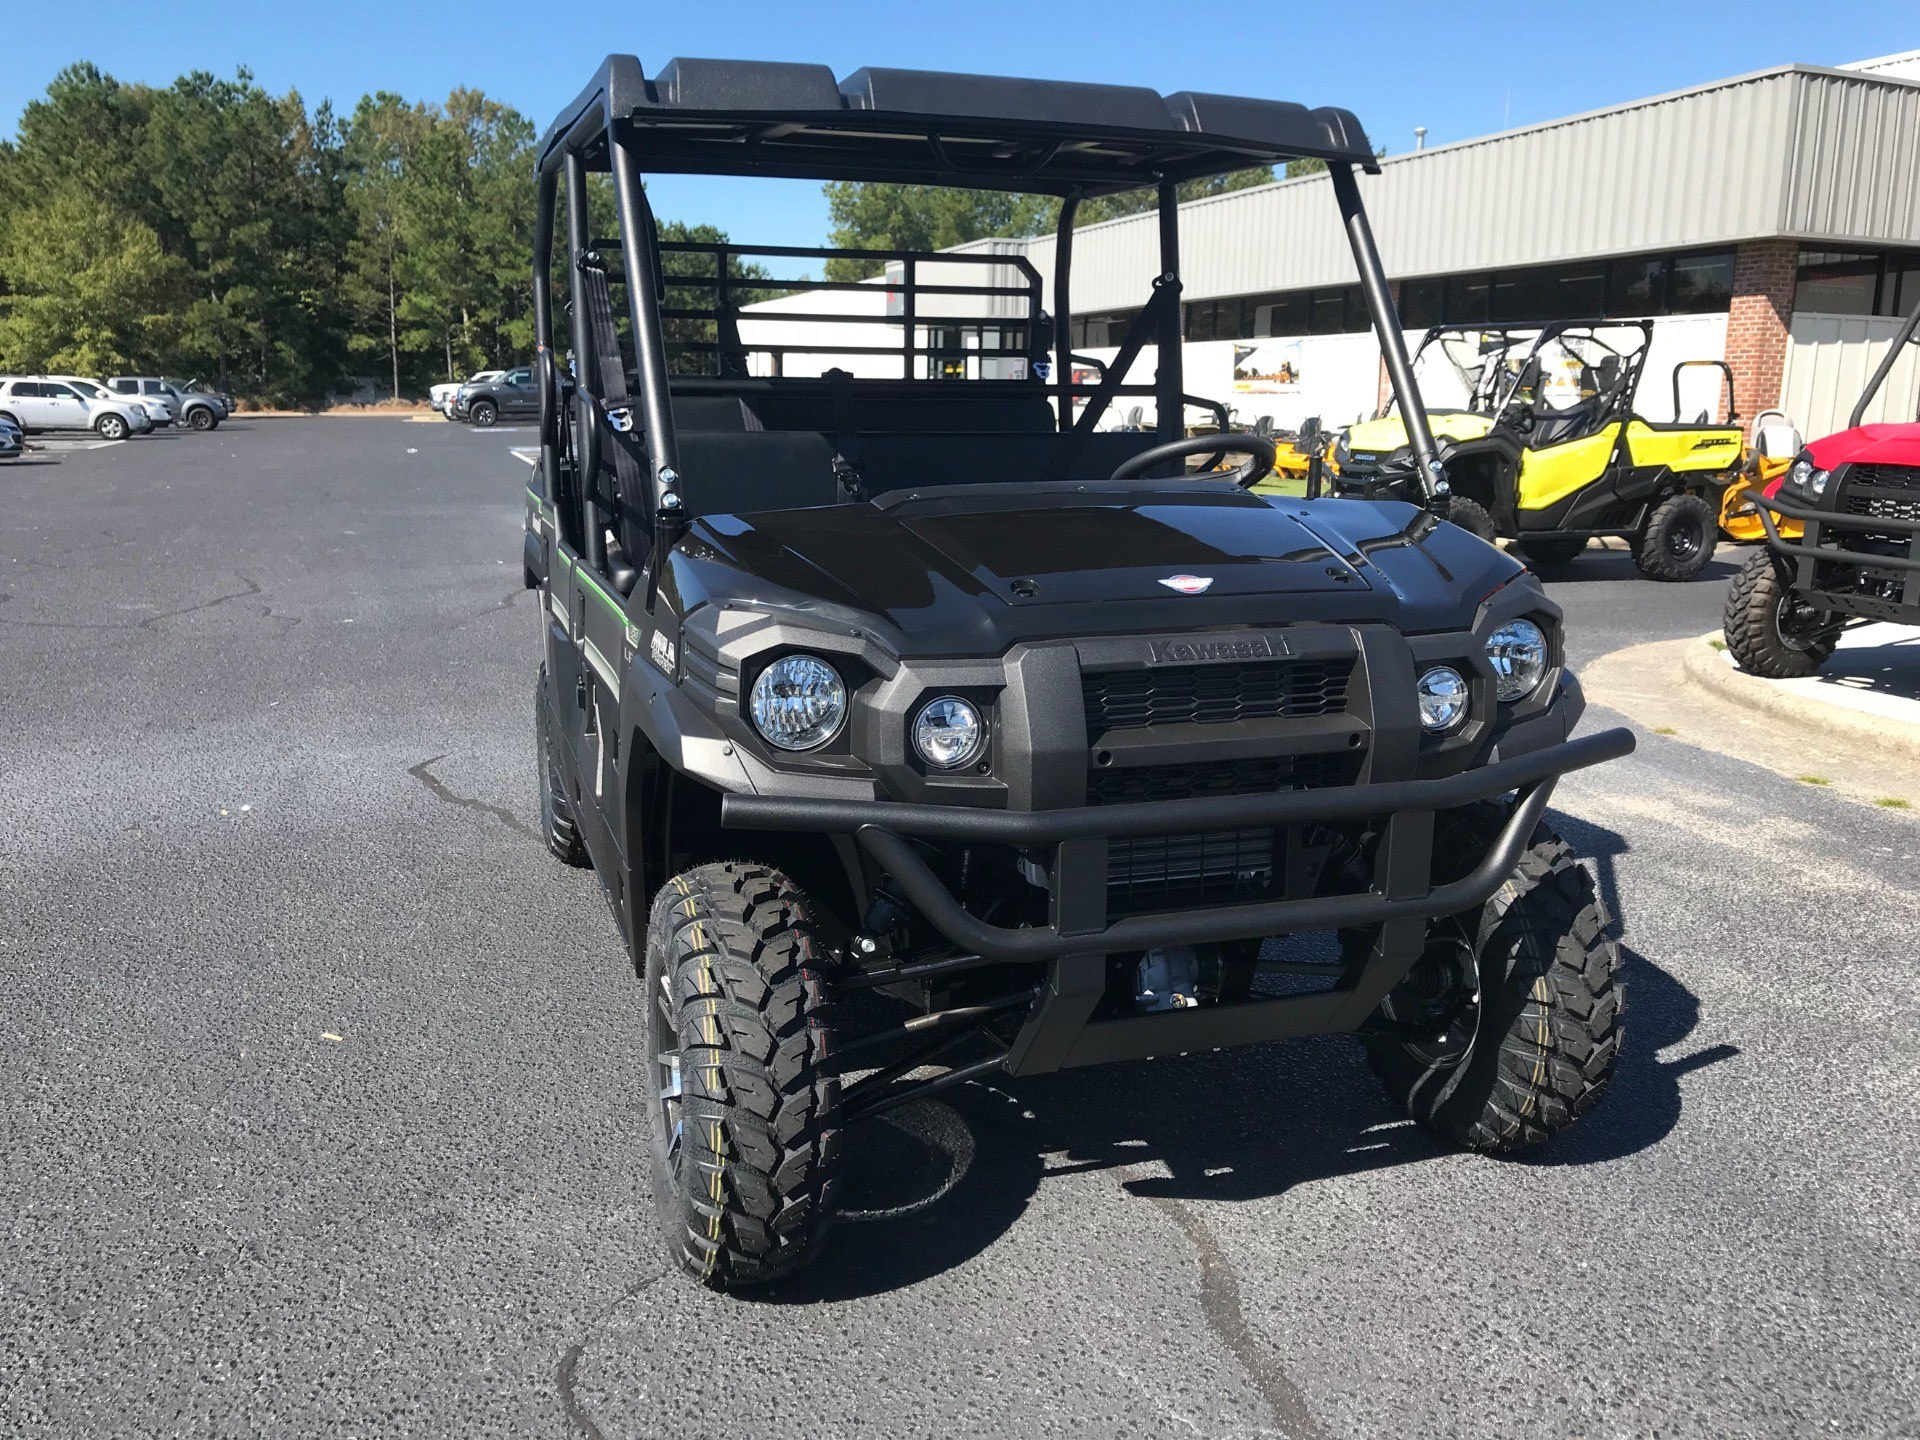 2019 Kawasaki Mule PRO-FXT EPS LE in Greenville, North Carolina - Photo 4